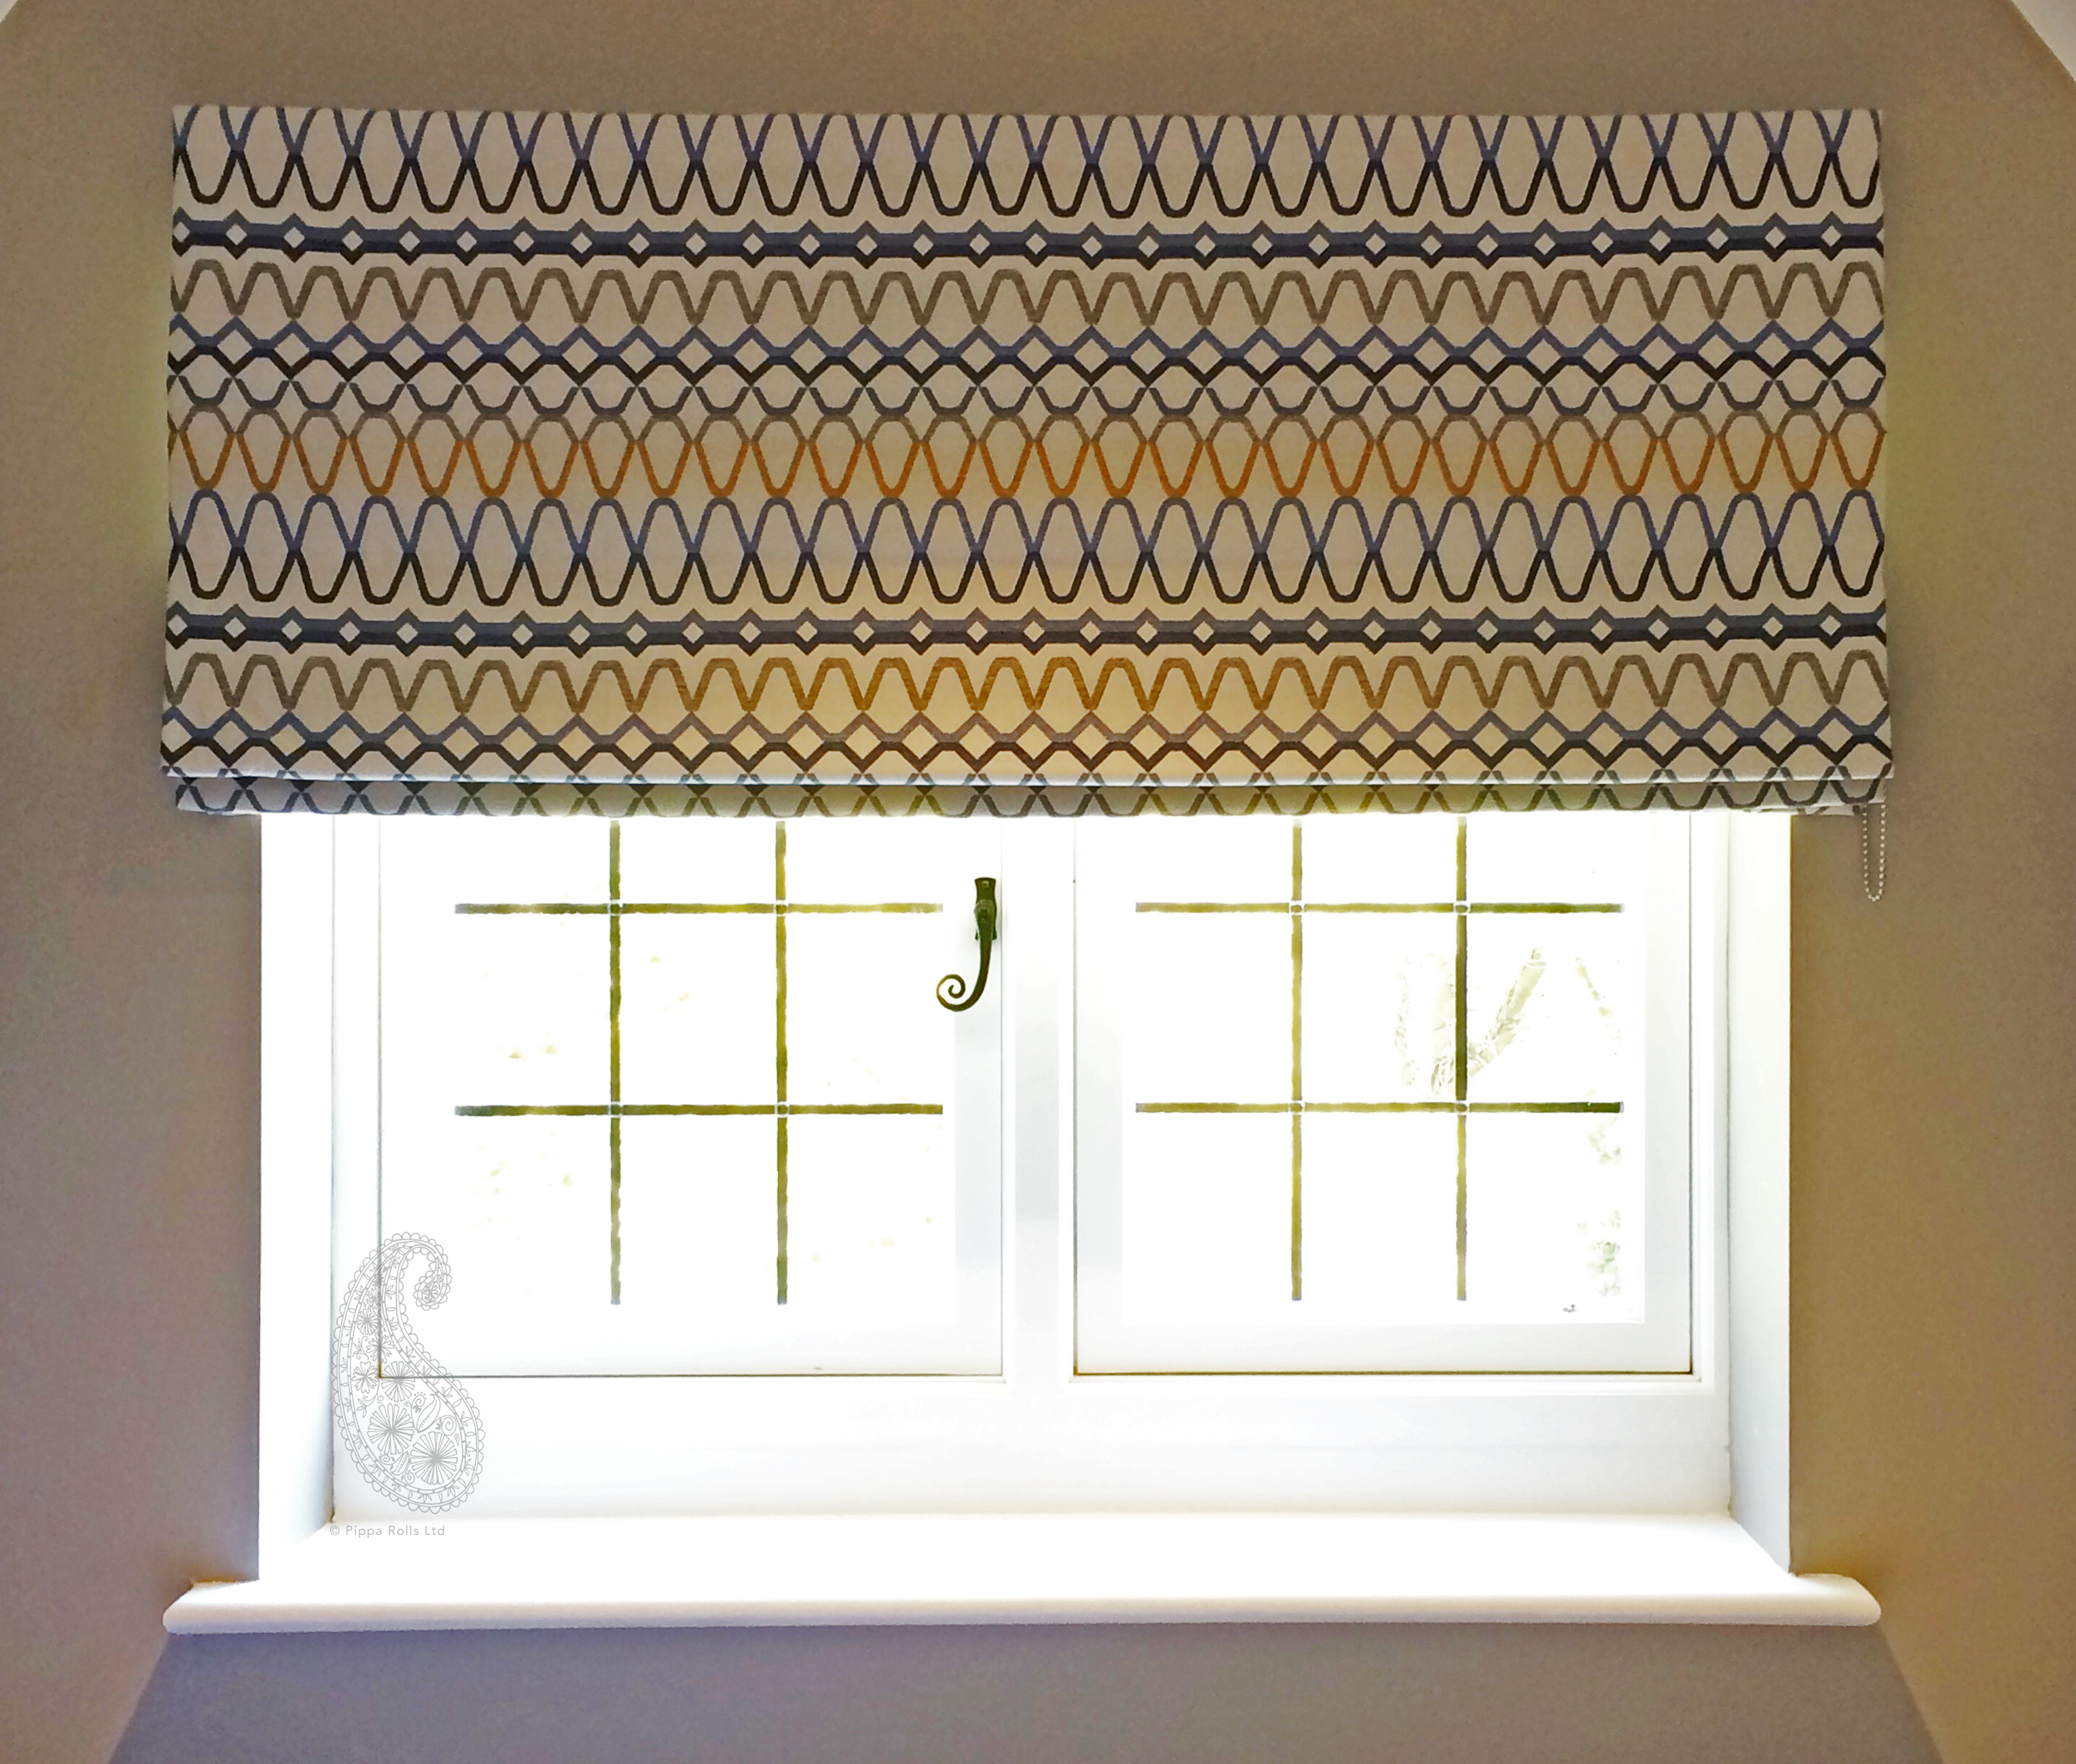 Sill width Roman blind for Jojo Humes Brown Designs Pippa Rolls Limited  jpeg.jpg